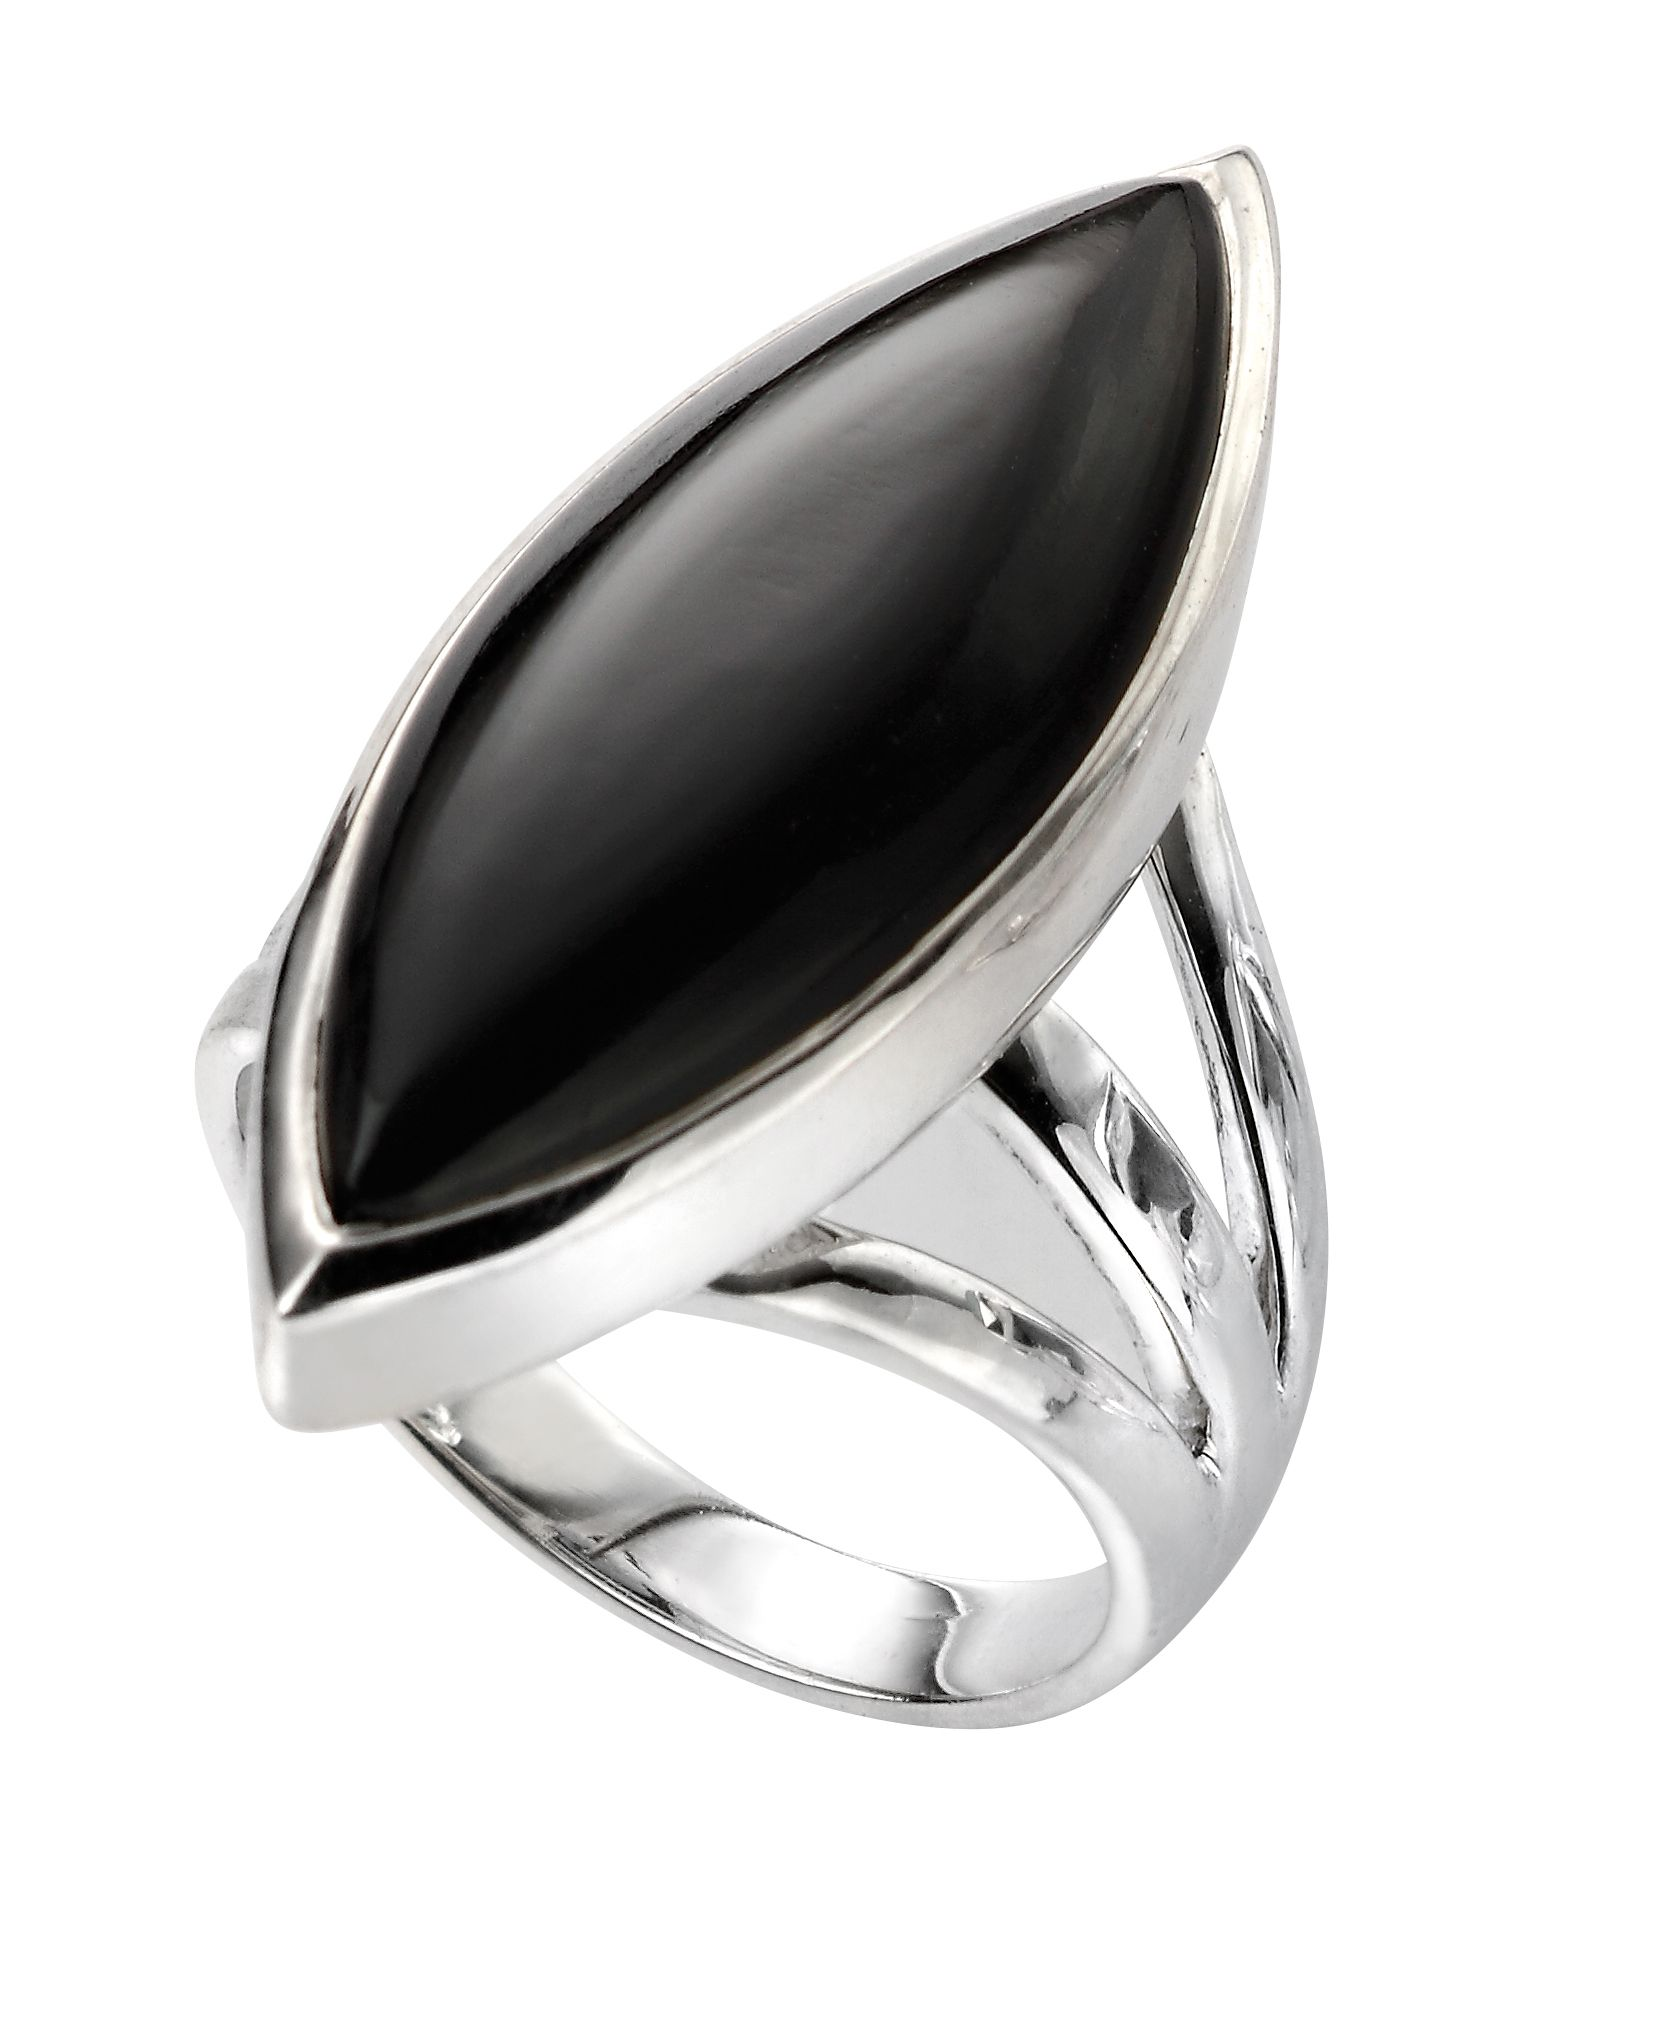 Elements Silver Womens 925 Sterling Silver Marquise Black Onyx Statement Ring